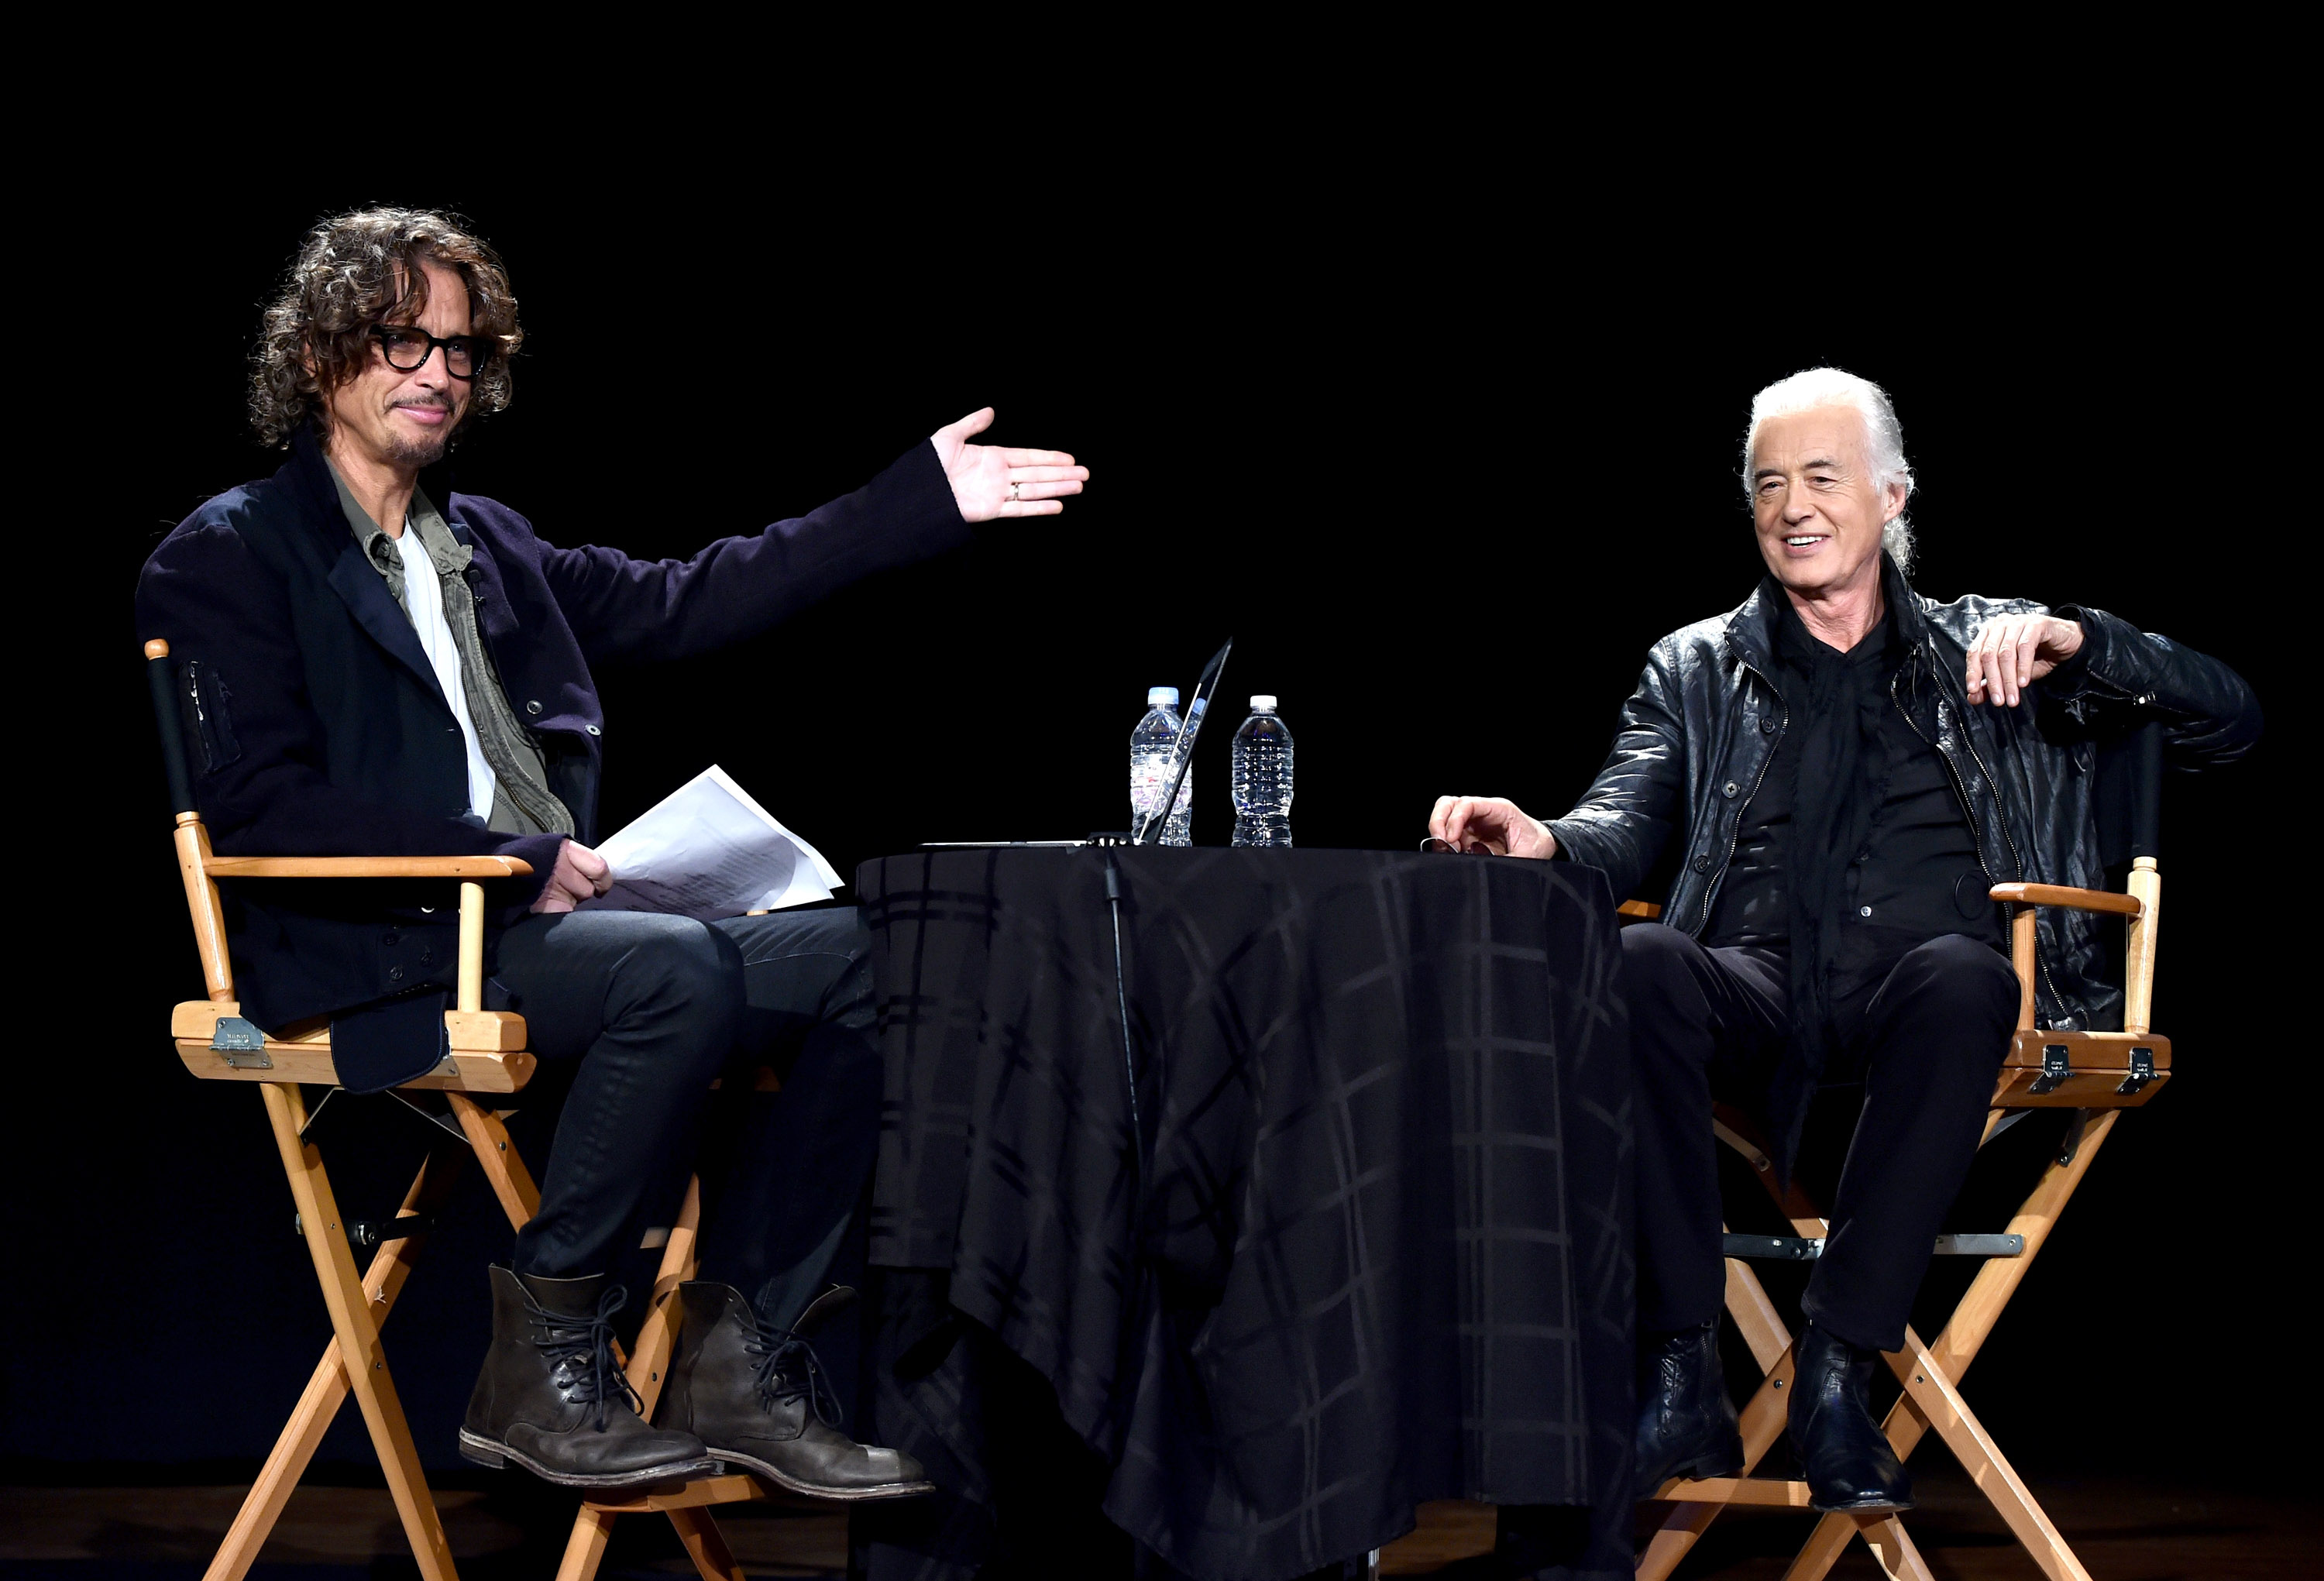 Chris Cornell Quizzes Jimmy Page About Led Zeppelin's Glory Days